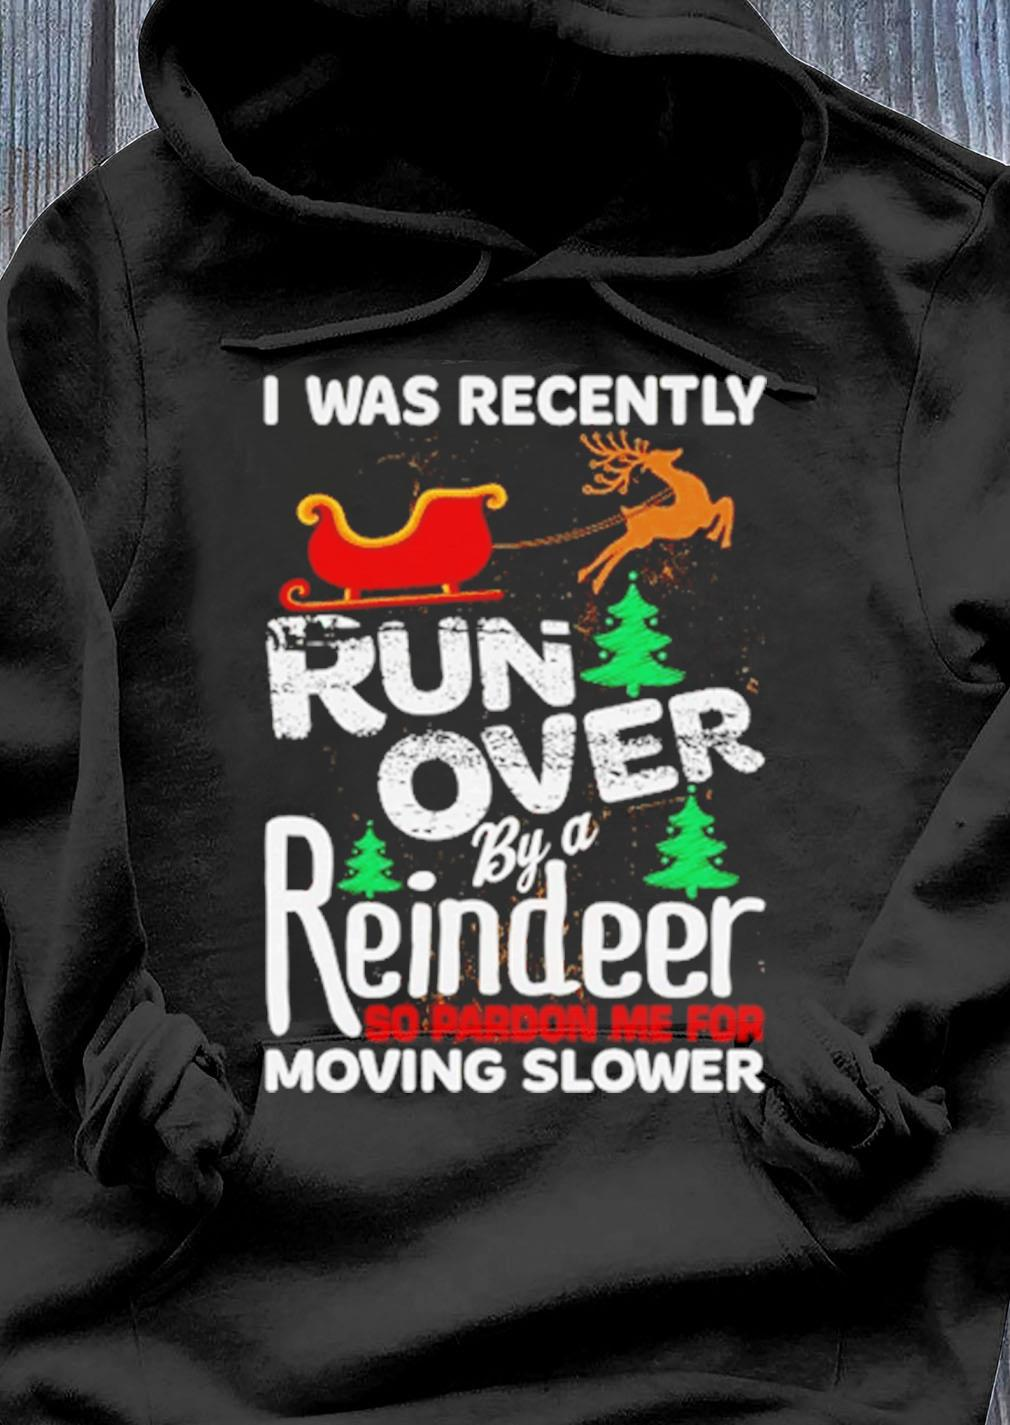 I Was Recently Run Over By A Reindeer So Pardon Me For Moving Slower Shirt Hoodie